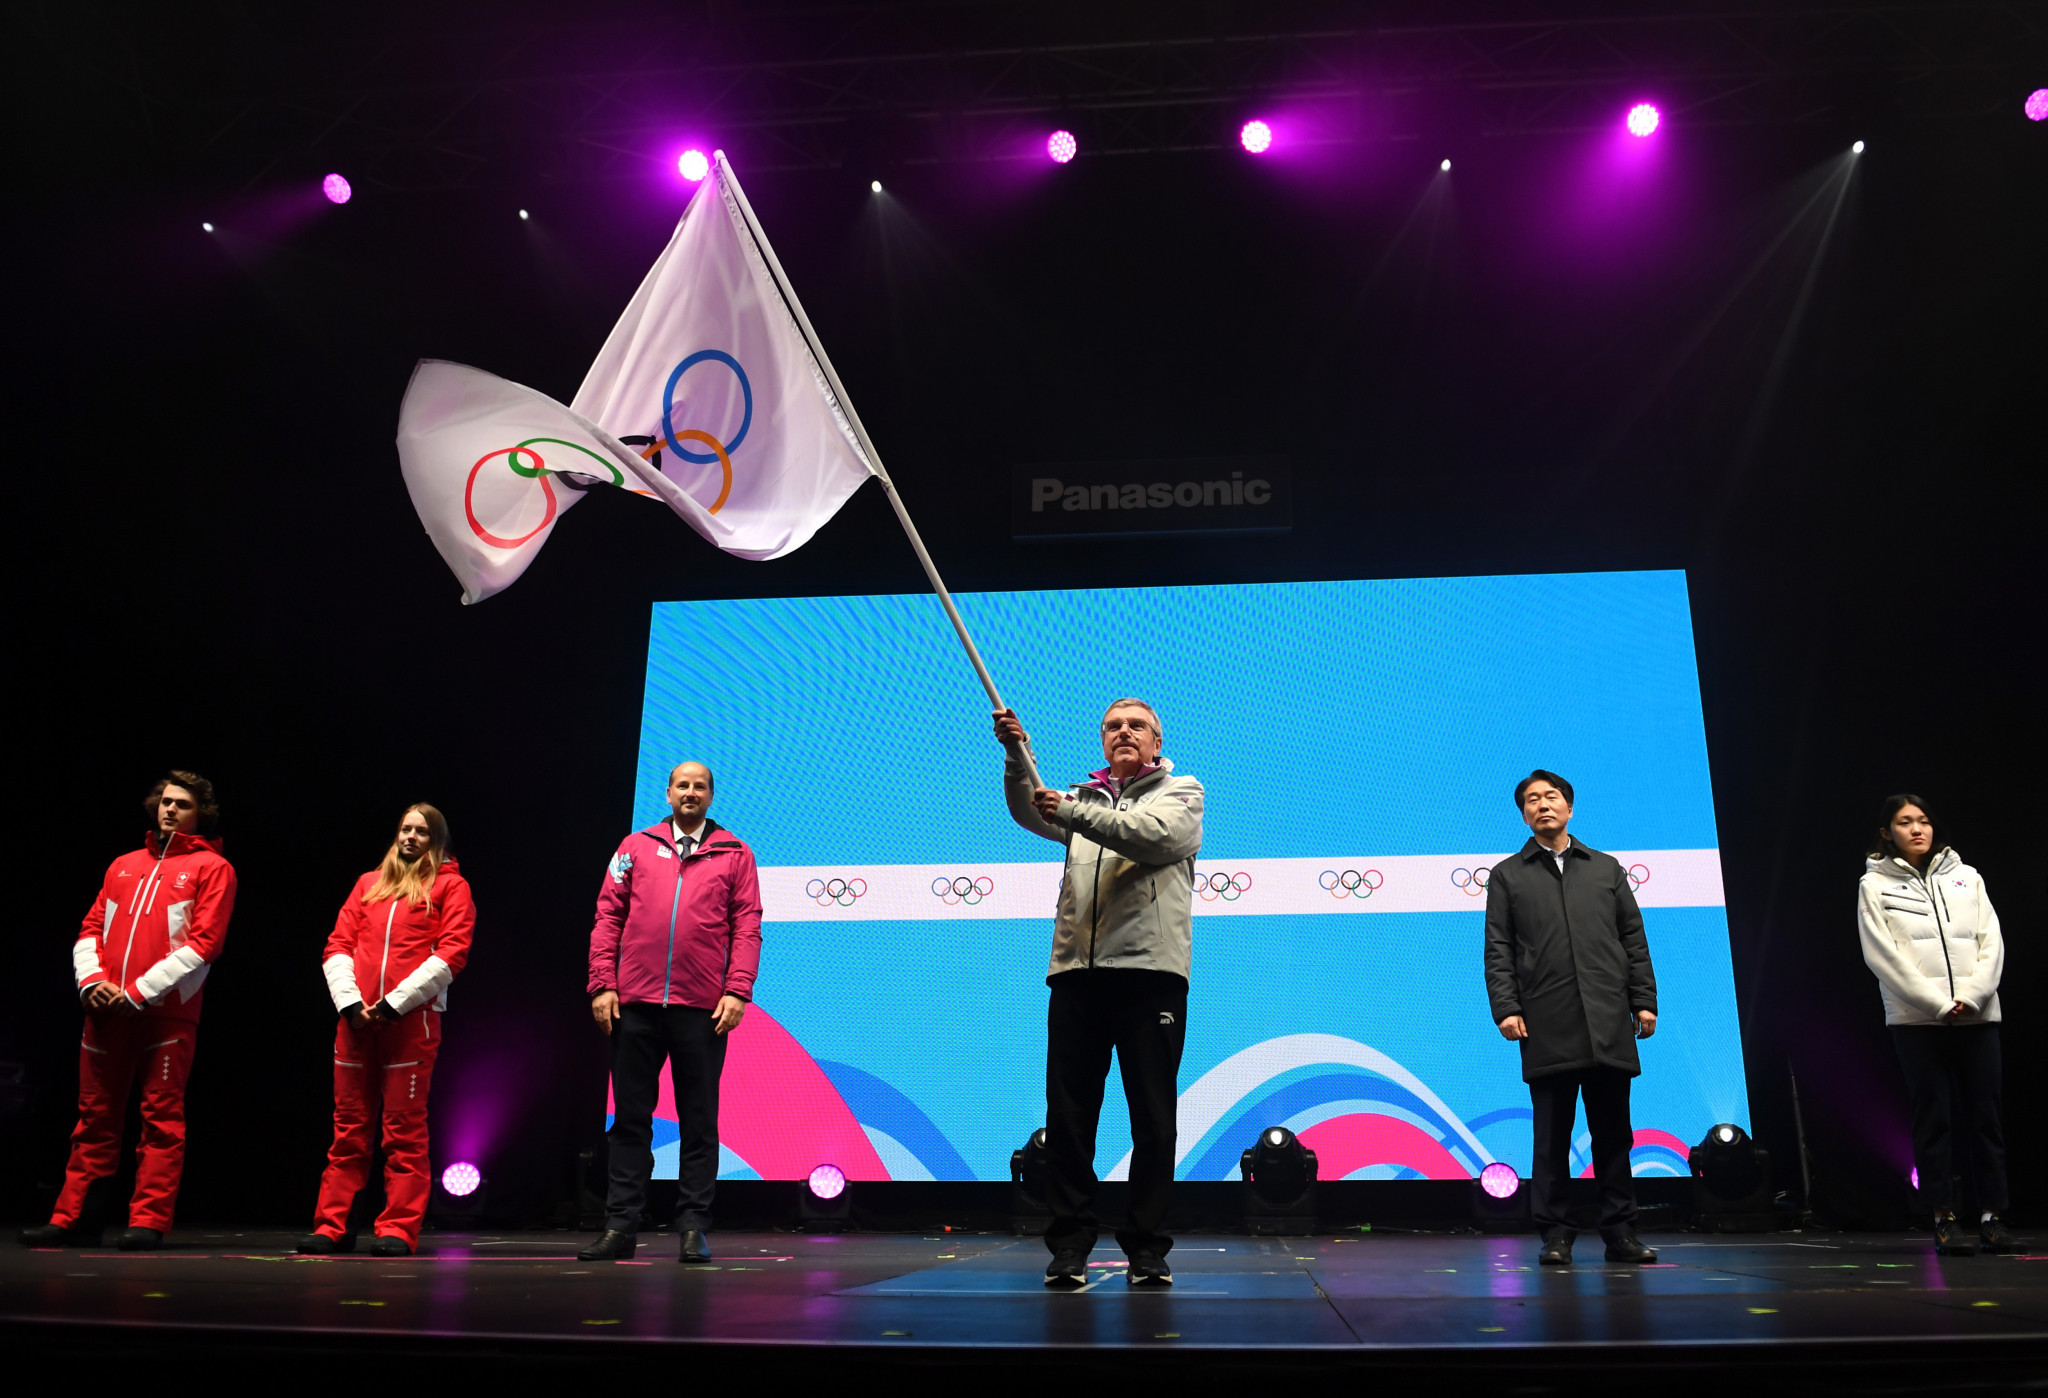 Lausanne 2020: Closing Ceremony